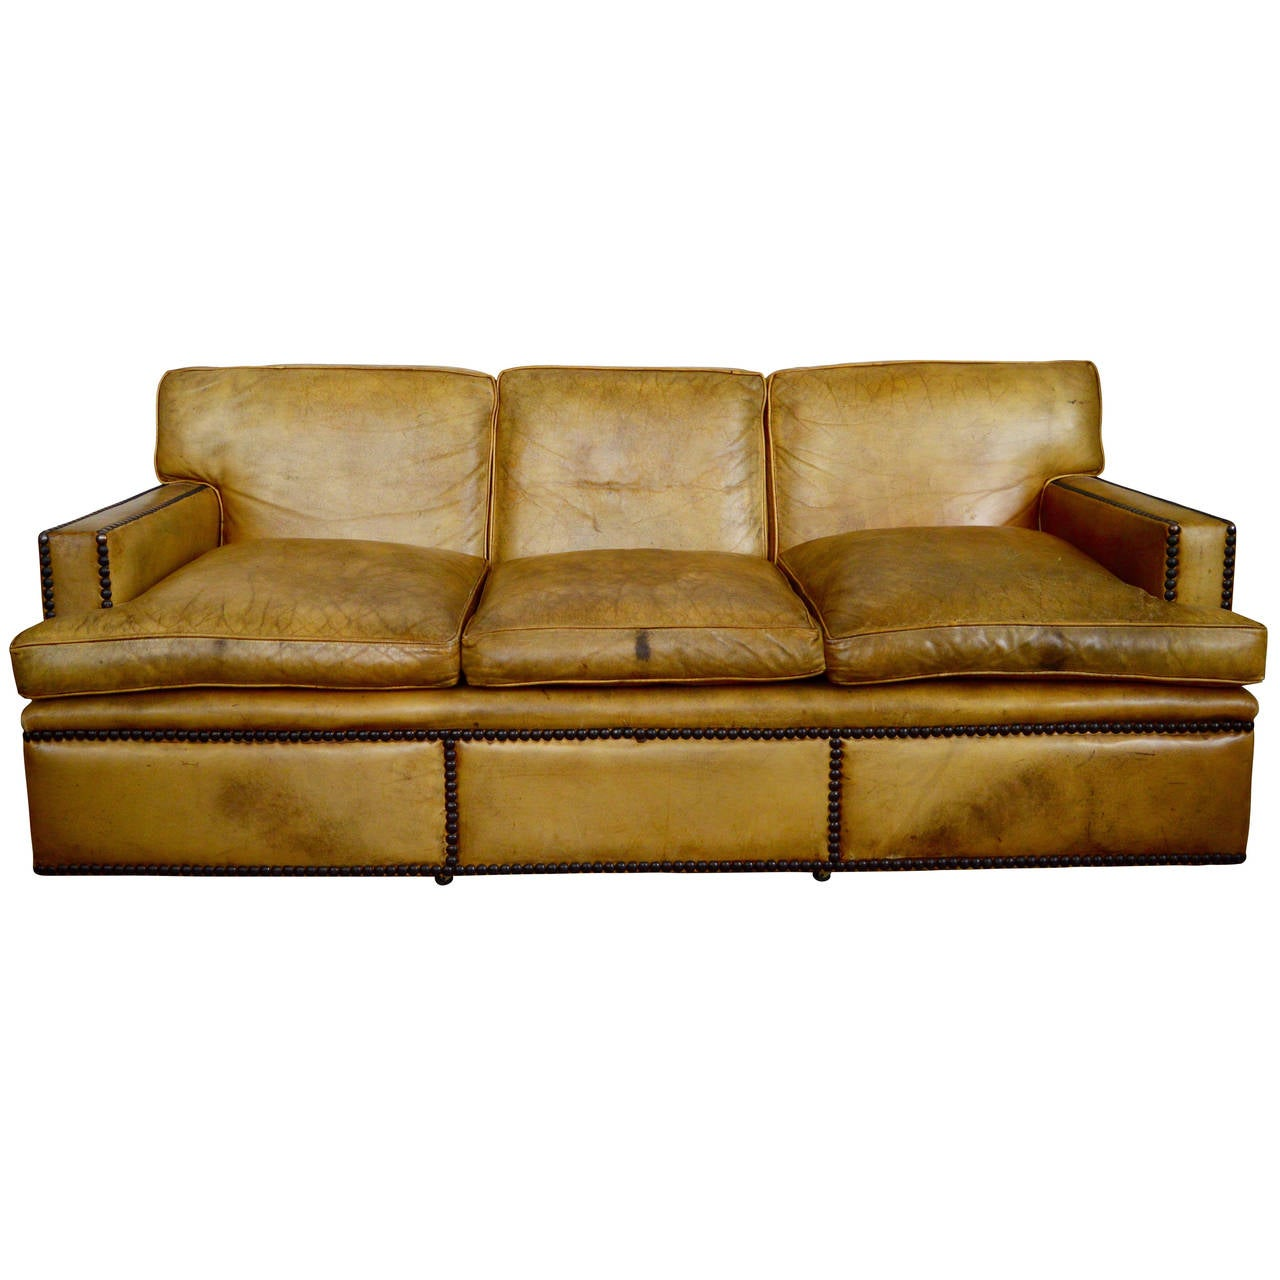 English Georgian Style Leather Sofa with Large Brass  : 2965302l from www.1stdibs.com size 1280 x 1280 jpeg 108kB